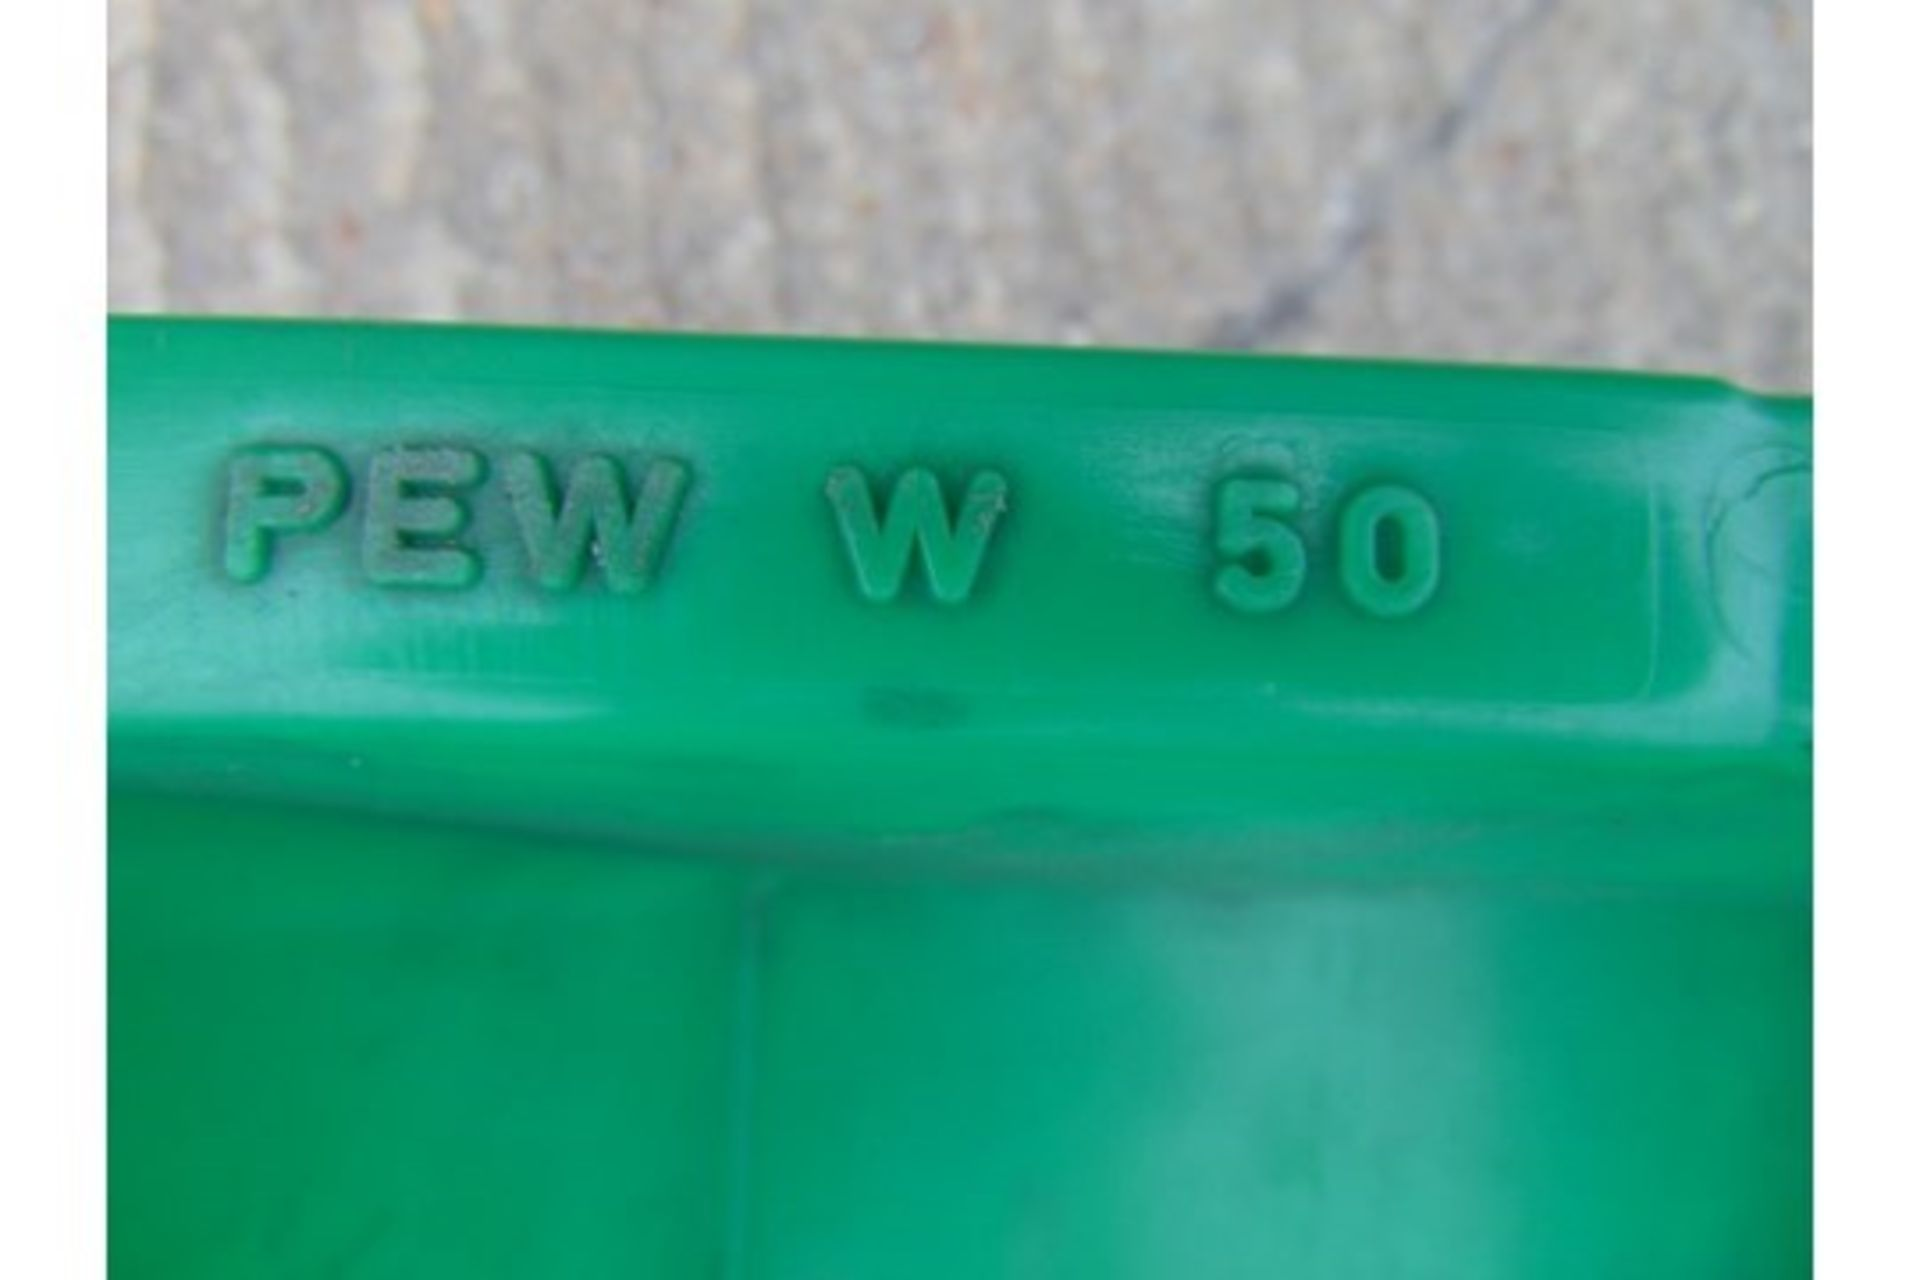 Lot 25859 - 5 x Schafer Pew W50 Parts Storage Containers